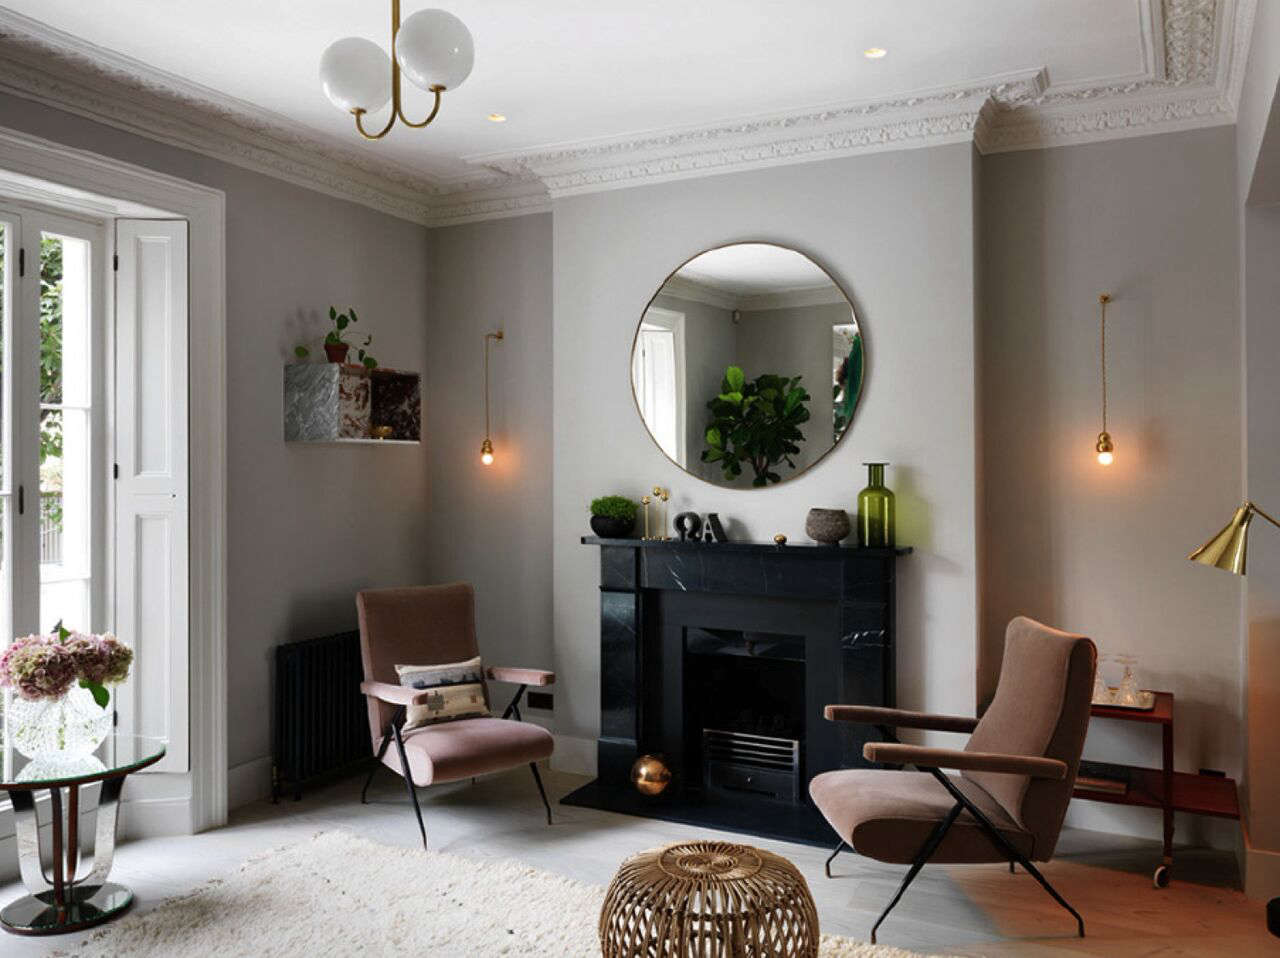 A Notting Hill Townhouse Tailored for Living by Charles Mellersh High style vintage and contemporary in a Notting Hill town house by interior designer Charles Mellersh   Remodelista